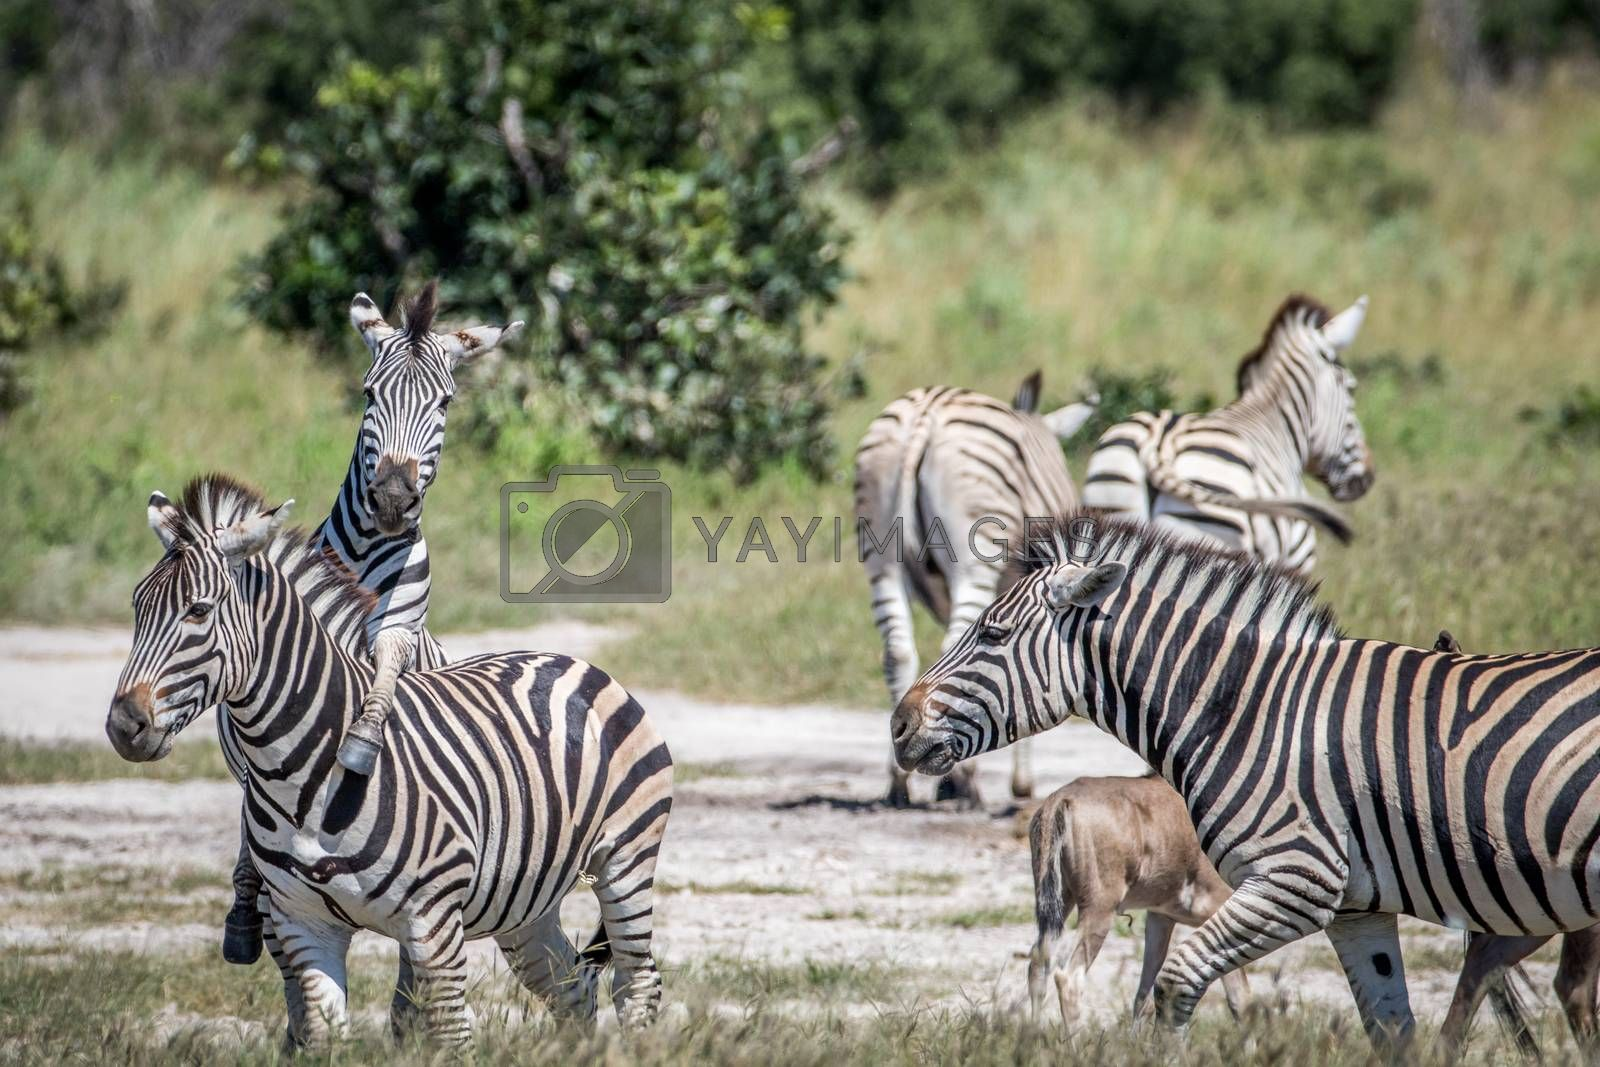 Group of Zebras playing in the Chobe National Park, Botswana.